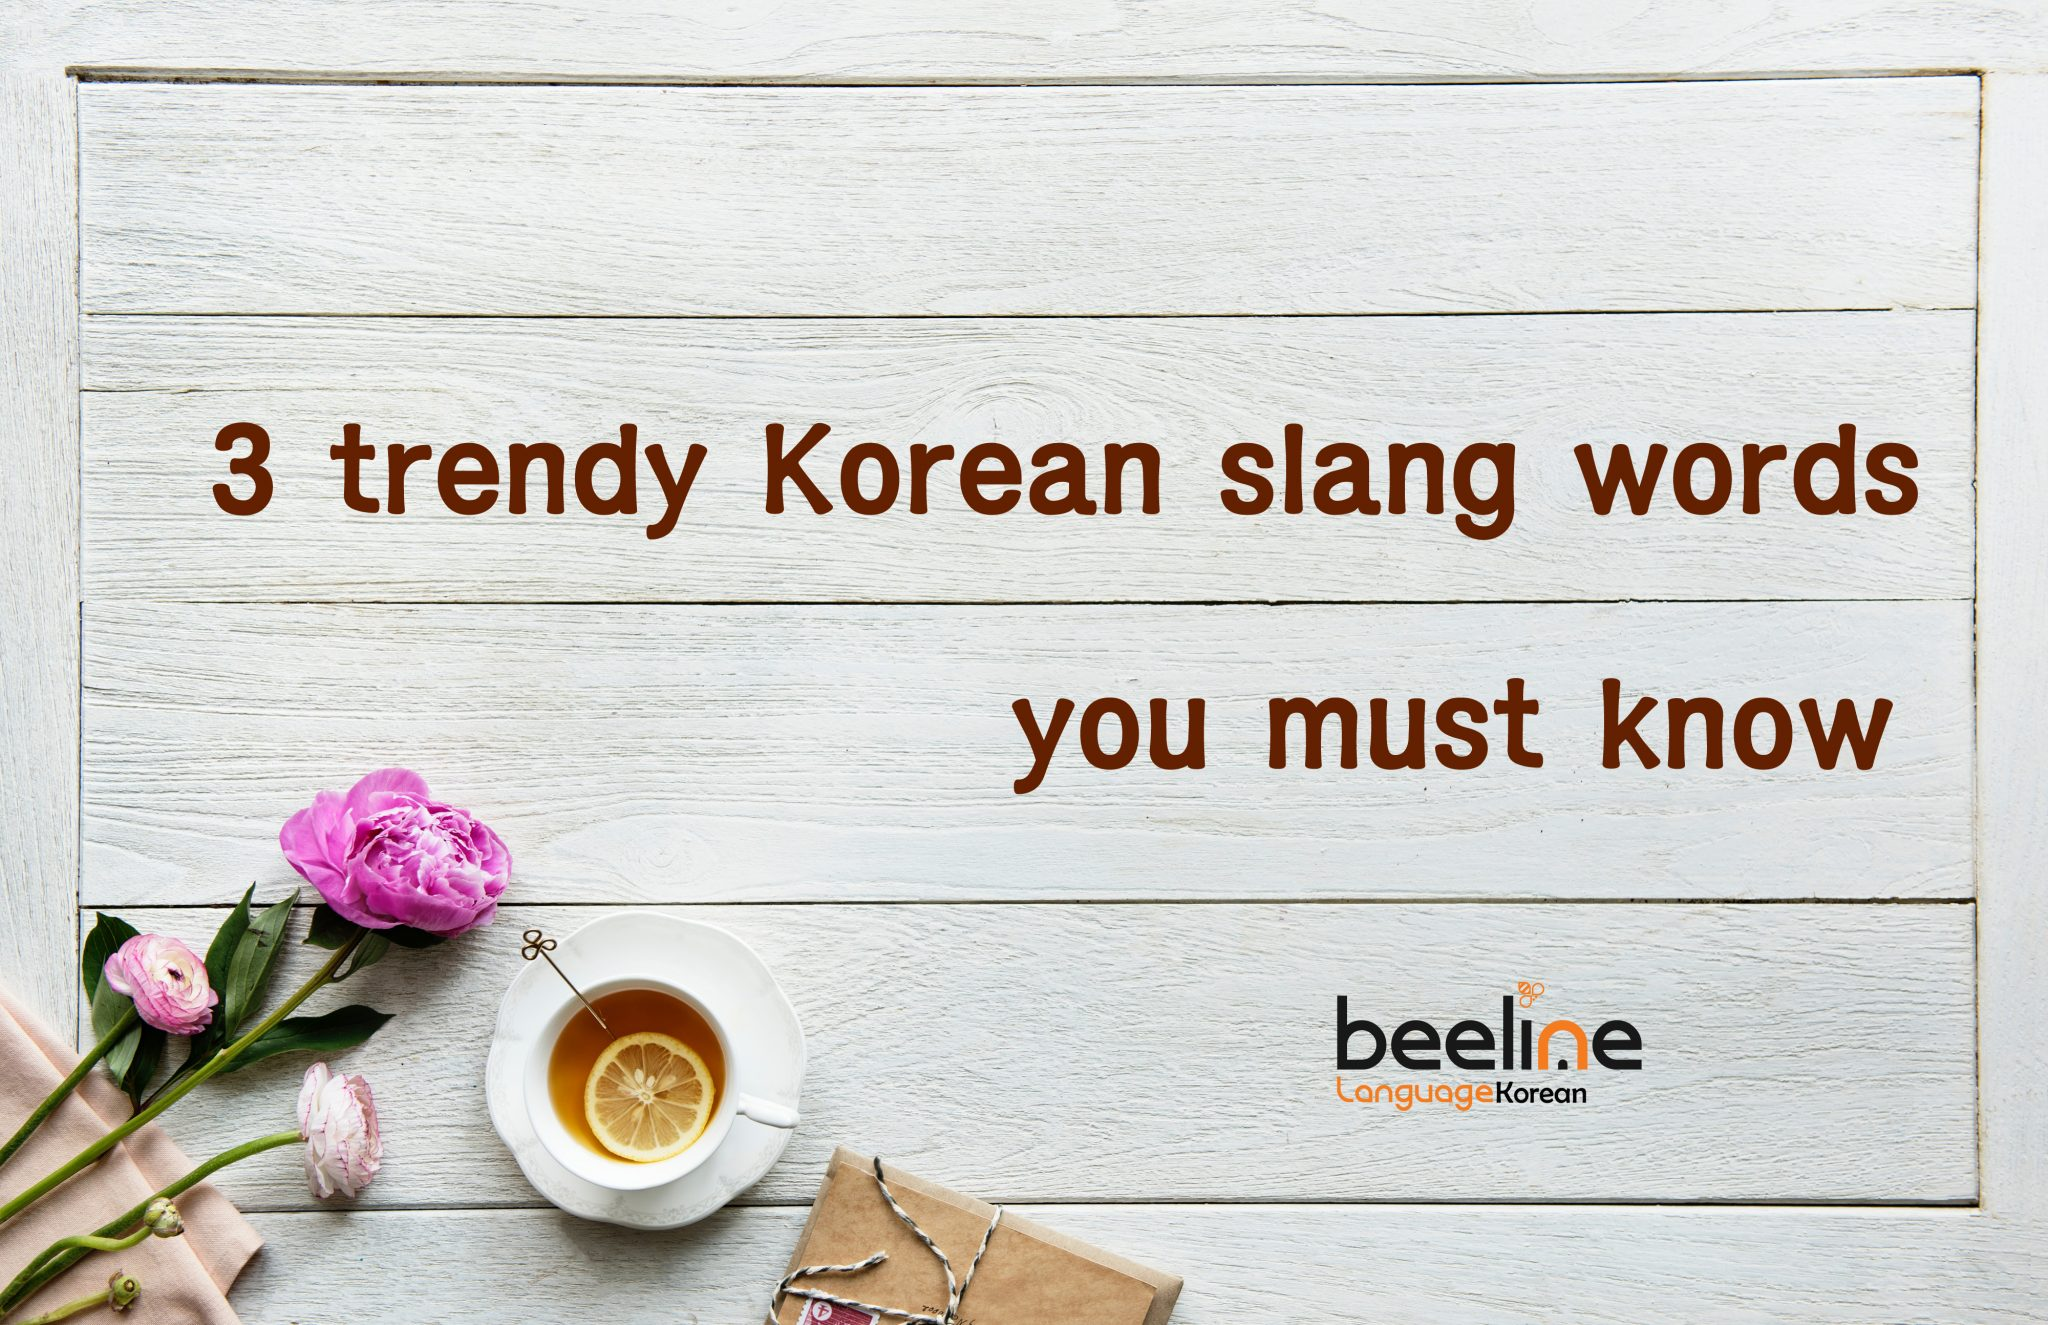 3 trendy Koreanslang words you must know